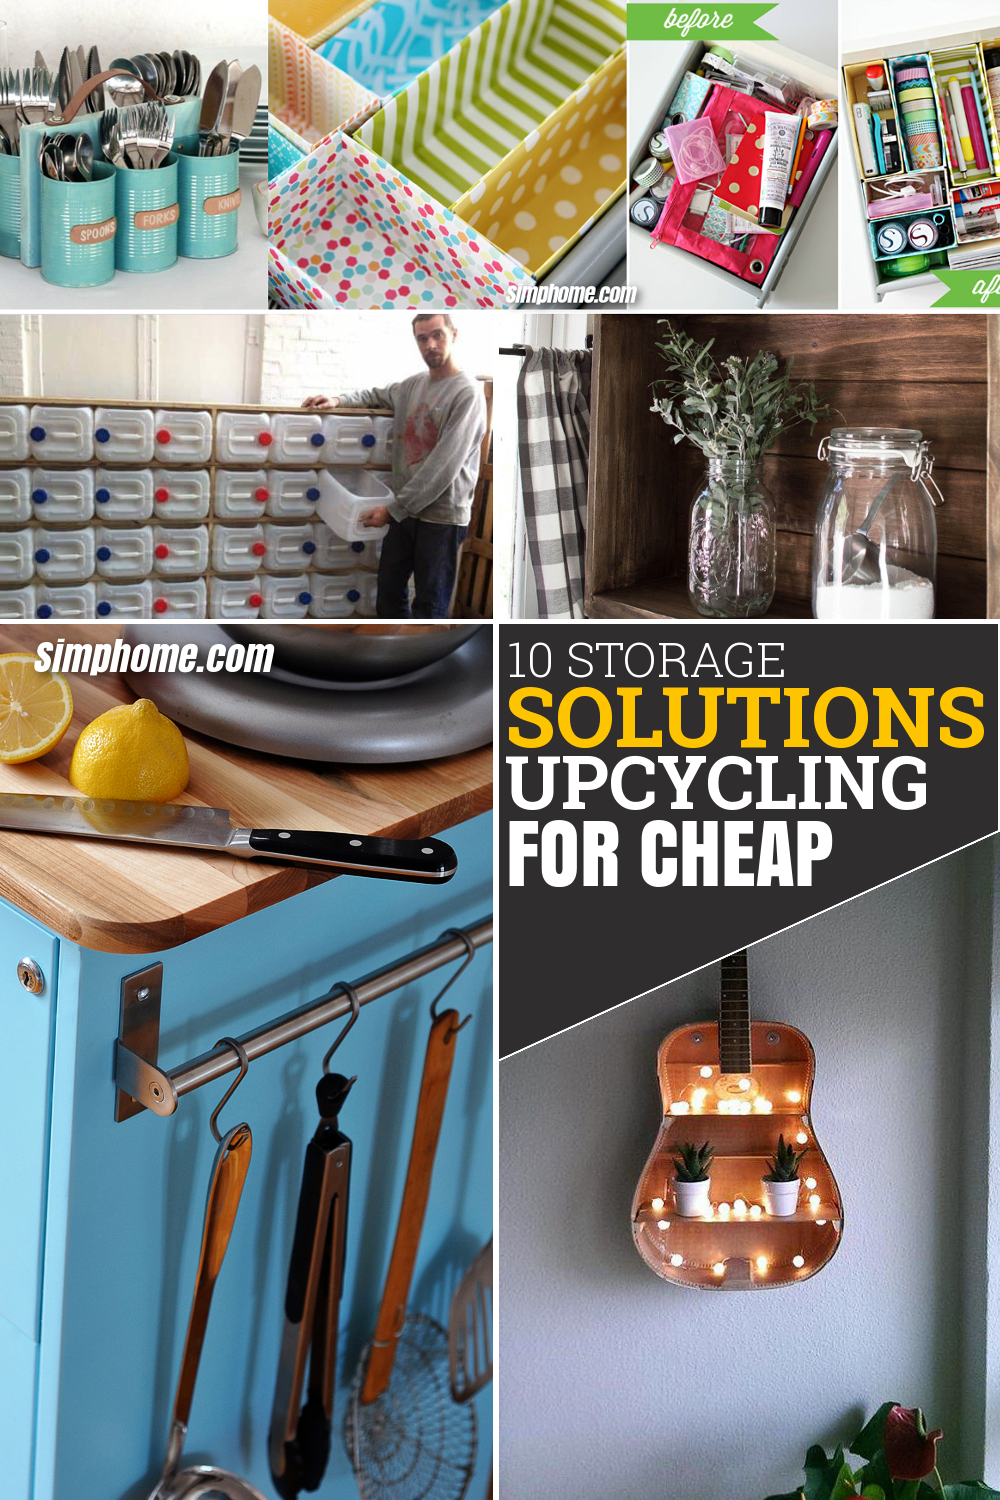 10 Storage Solution and Upcycling Ideas for Cheap via Simphome.com Featured Pinterest